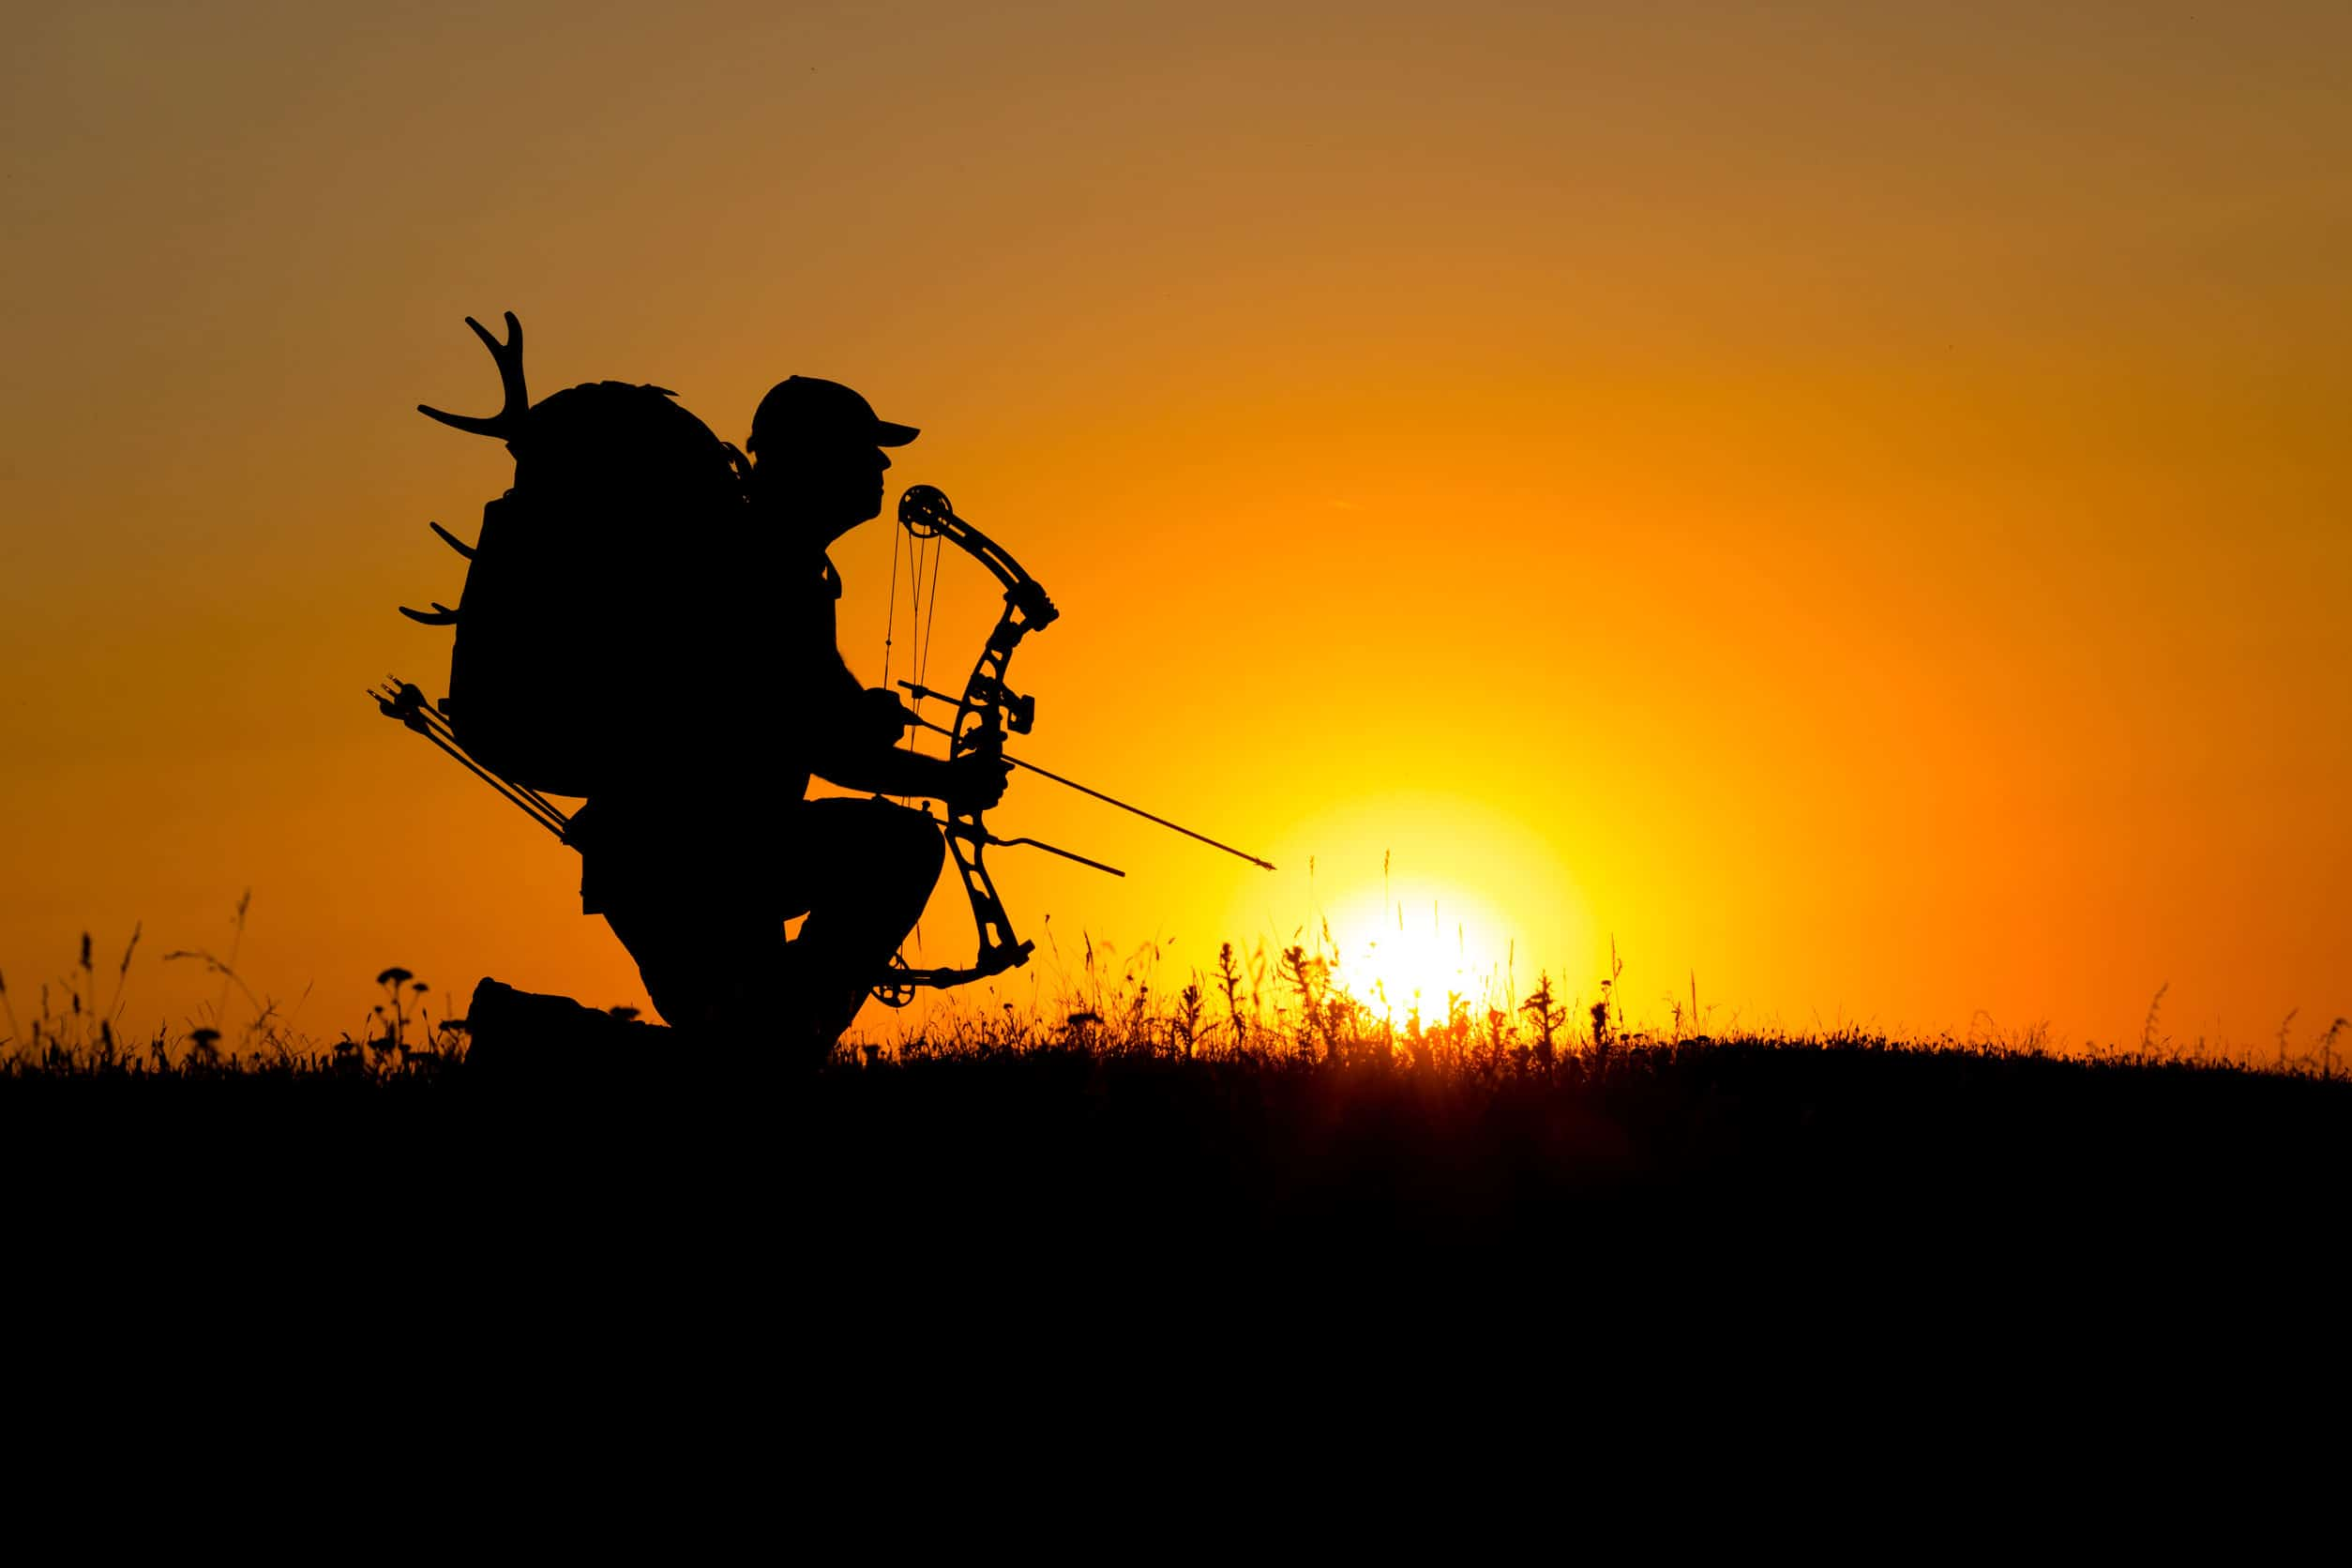 The Best Back Tension Archery Releases for Hunting